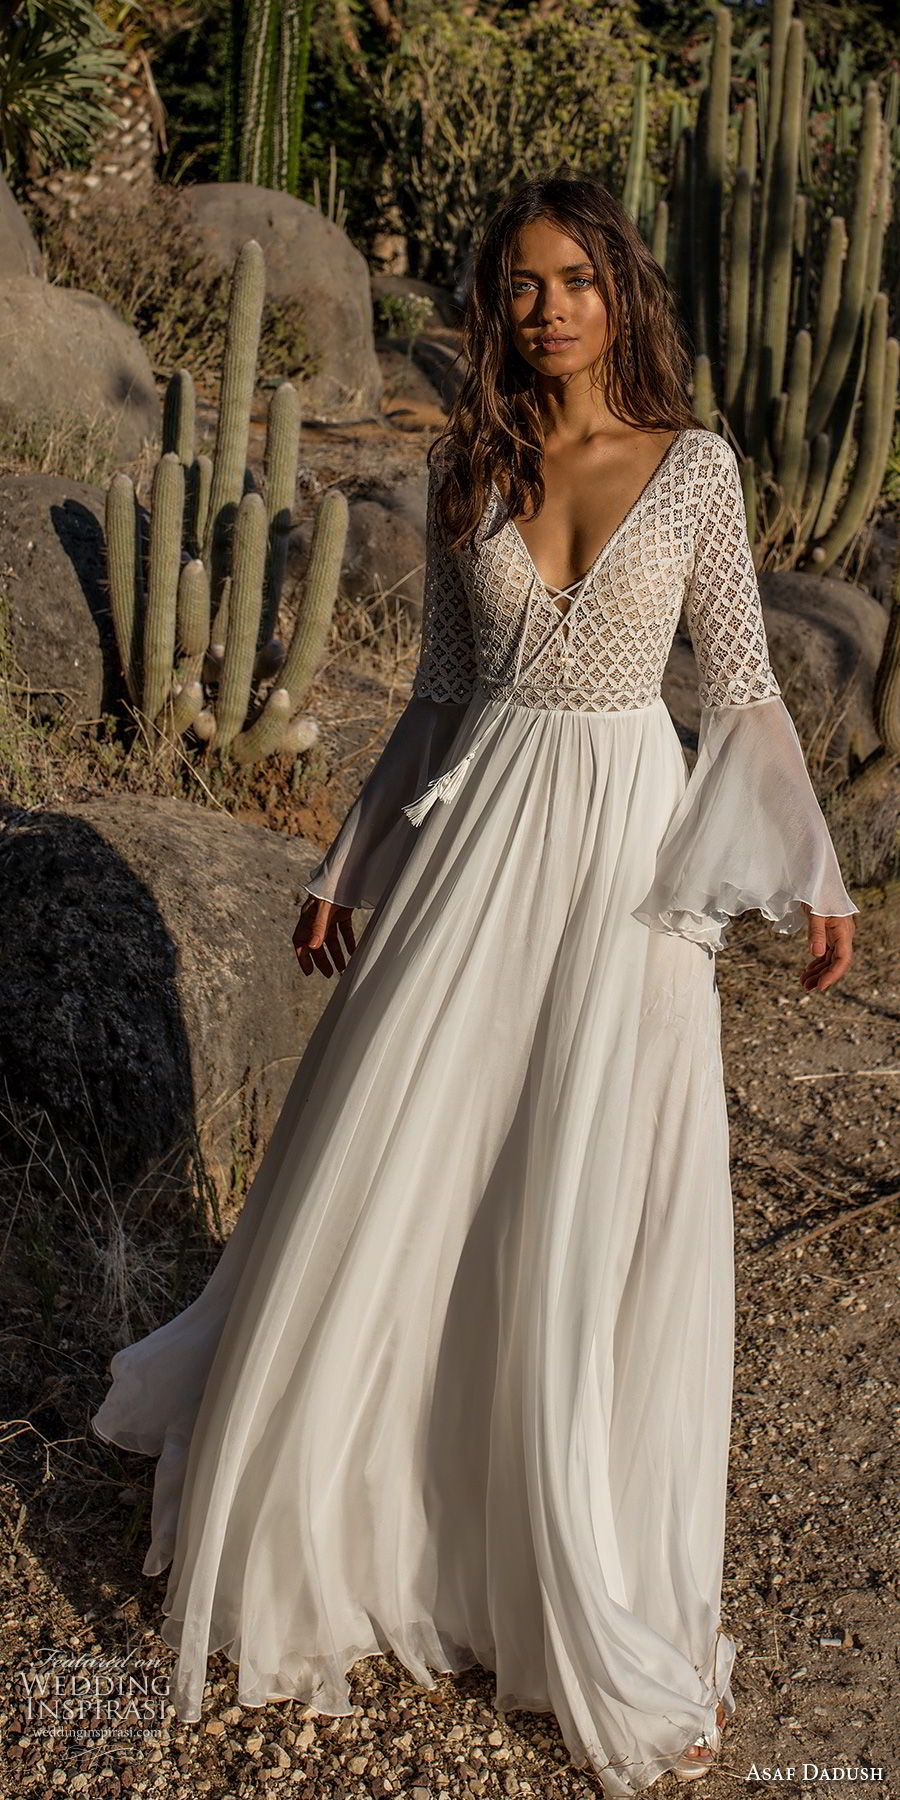 abcaec9b289 asaf dadush 2018 bridal long lantern sleeves deep v neckline heavily  embellished bodice romantic bohemian soft a line wedding dress open back  sweep train ...